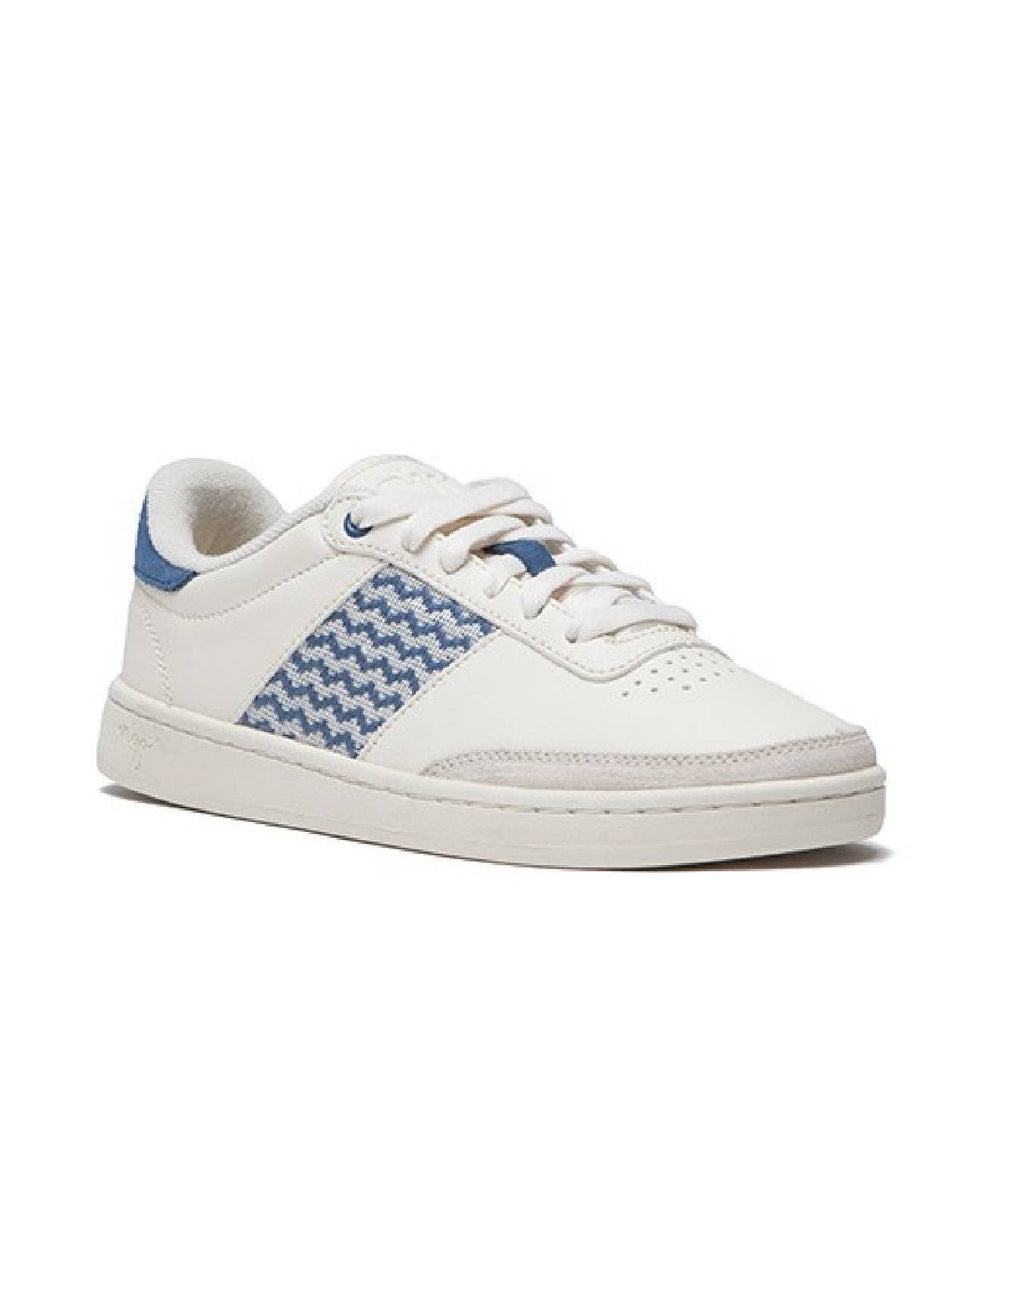 Ky Co herre sneakers Sko Ngo